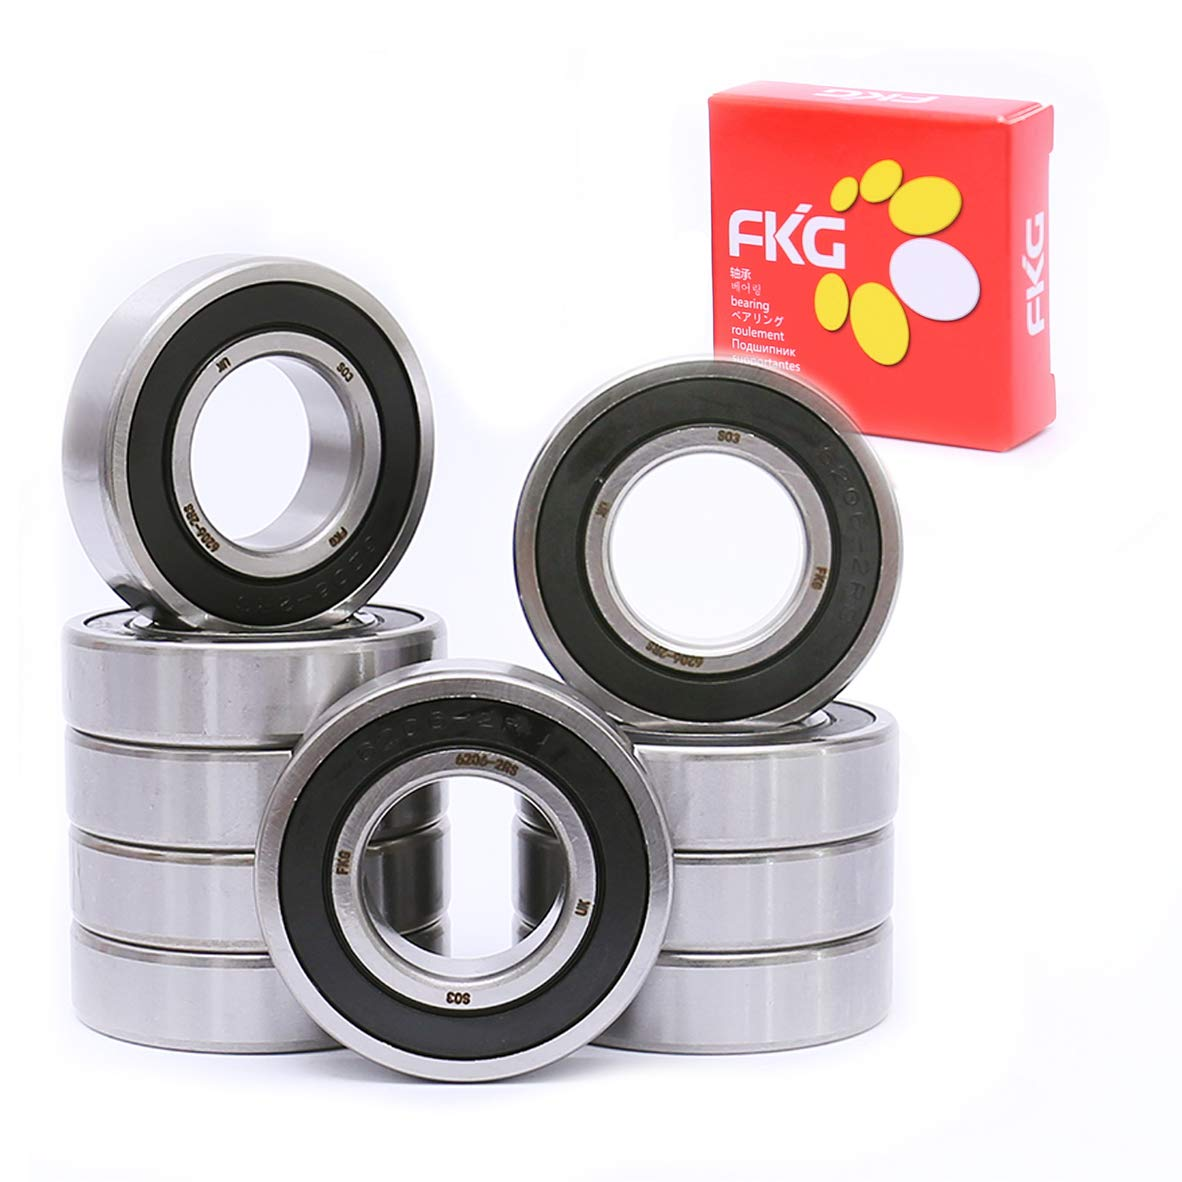 FKG 10Pcs 6206-2RS 30x62x16mm Recommended Double Seal Inexpensive Groove Bal Deep Rubber